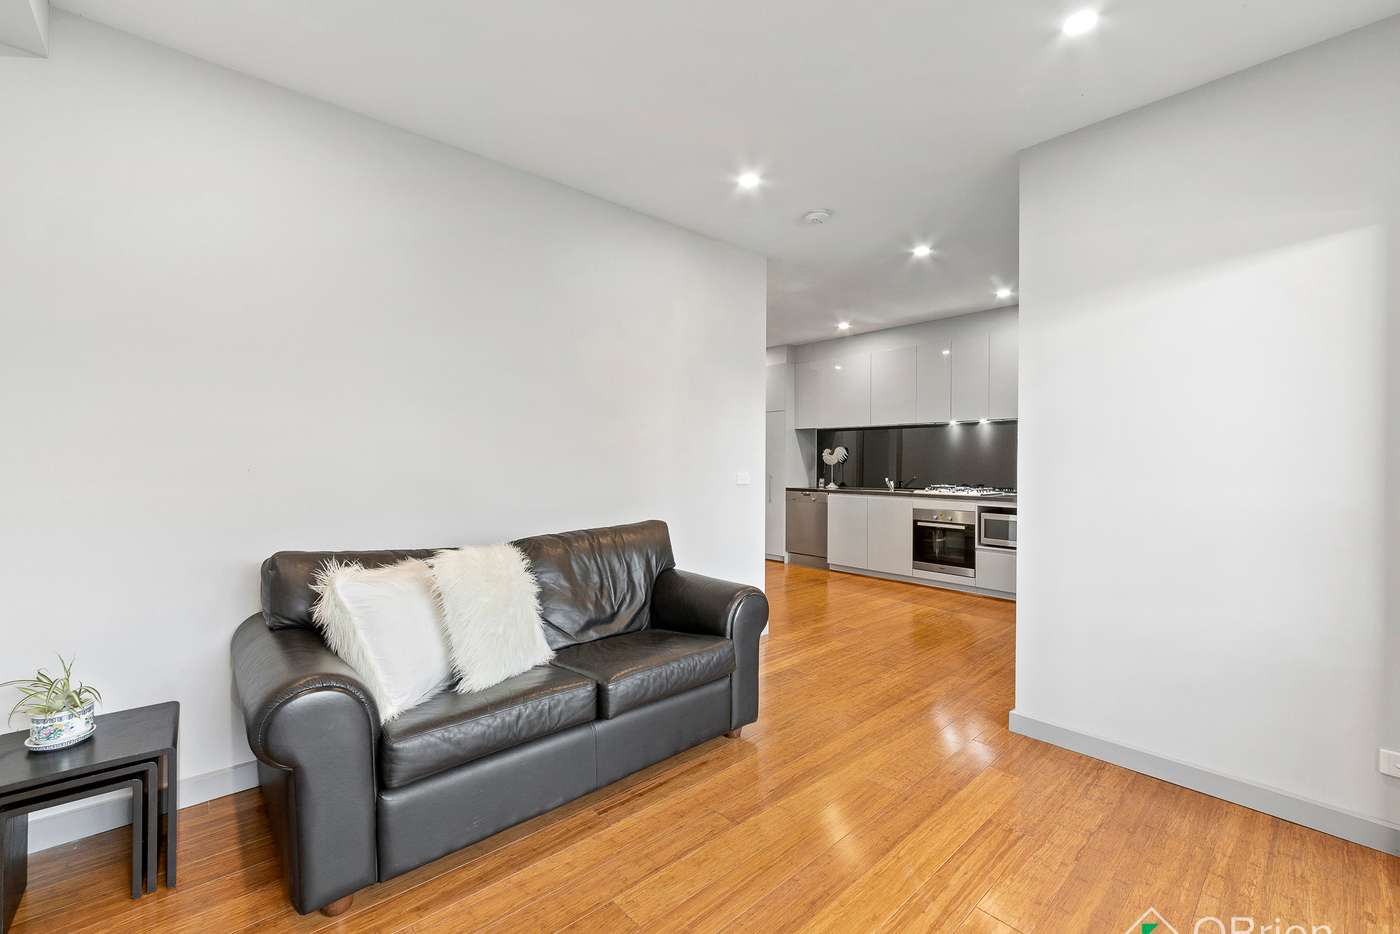 Fifth view of Homely apartment listing, 1/11 Railway Crescent, Hampton VIC 3188